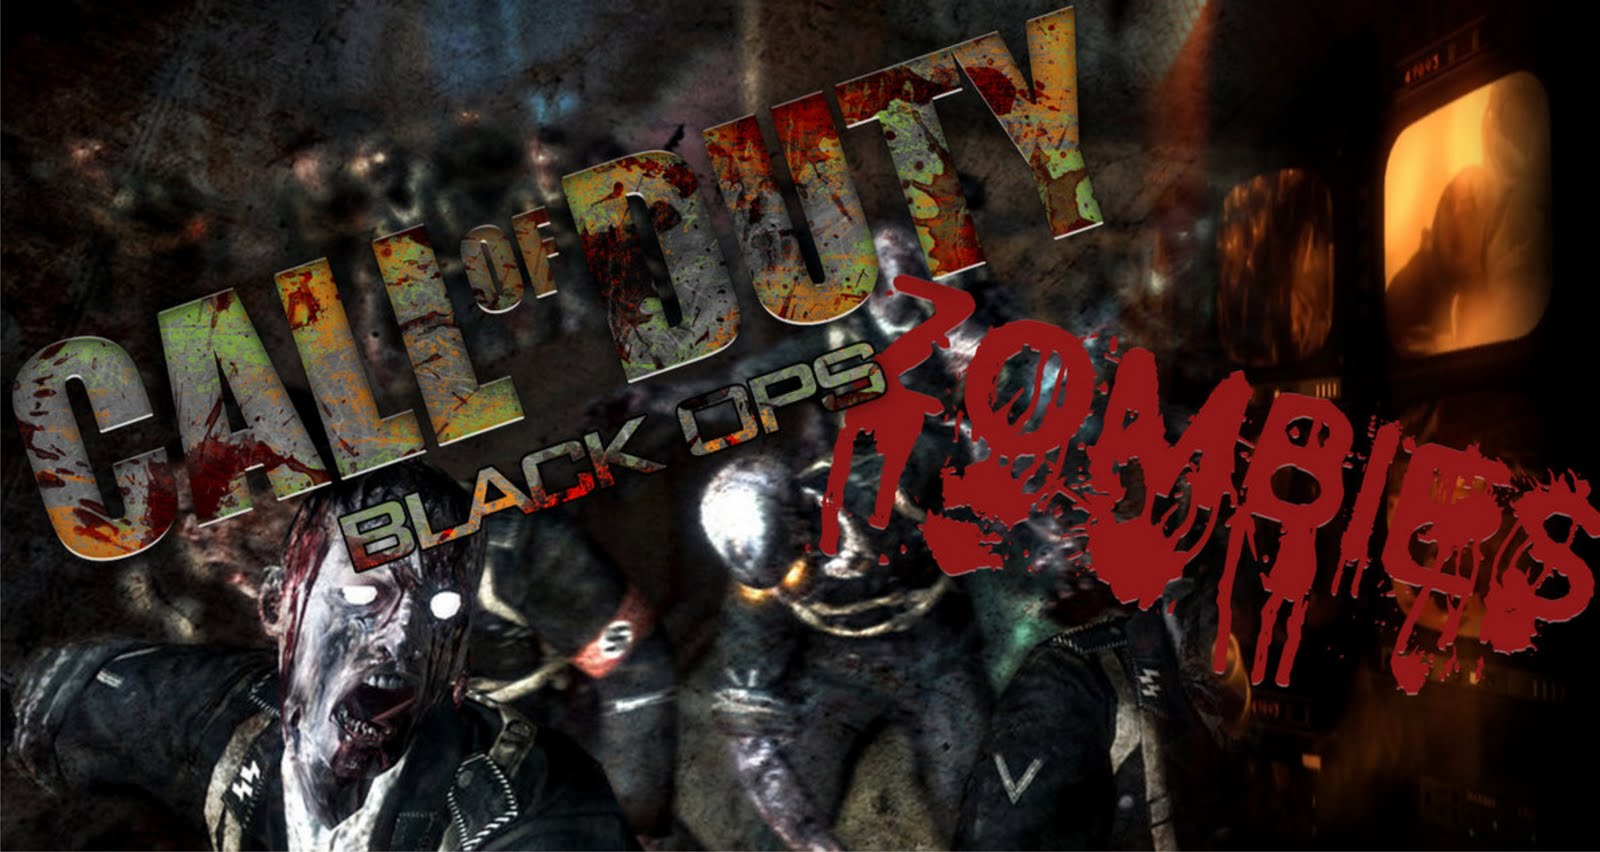 COD BO2 Zombies Wallpapers - Top Free COD BO2 Zombies